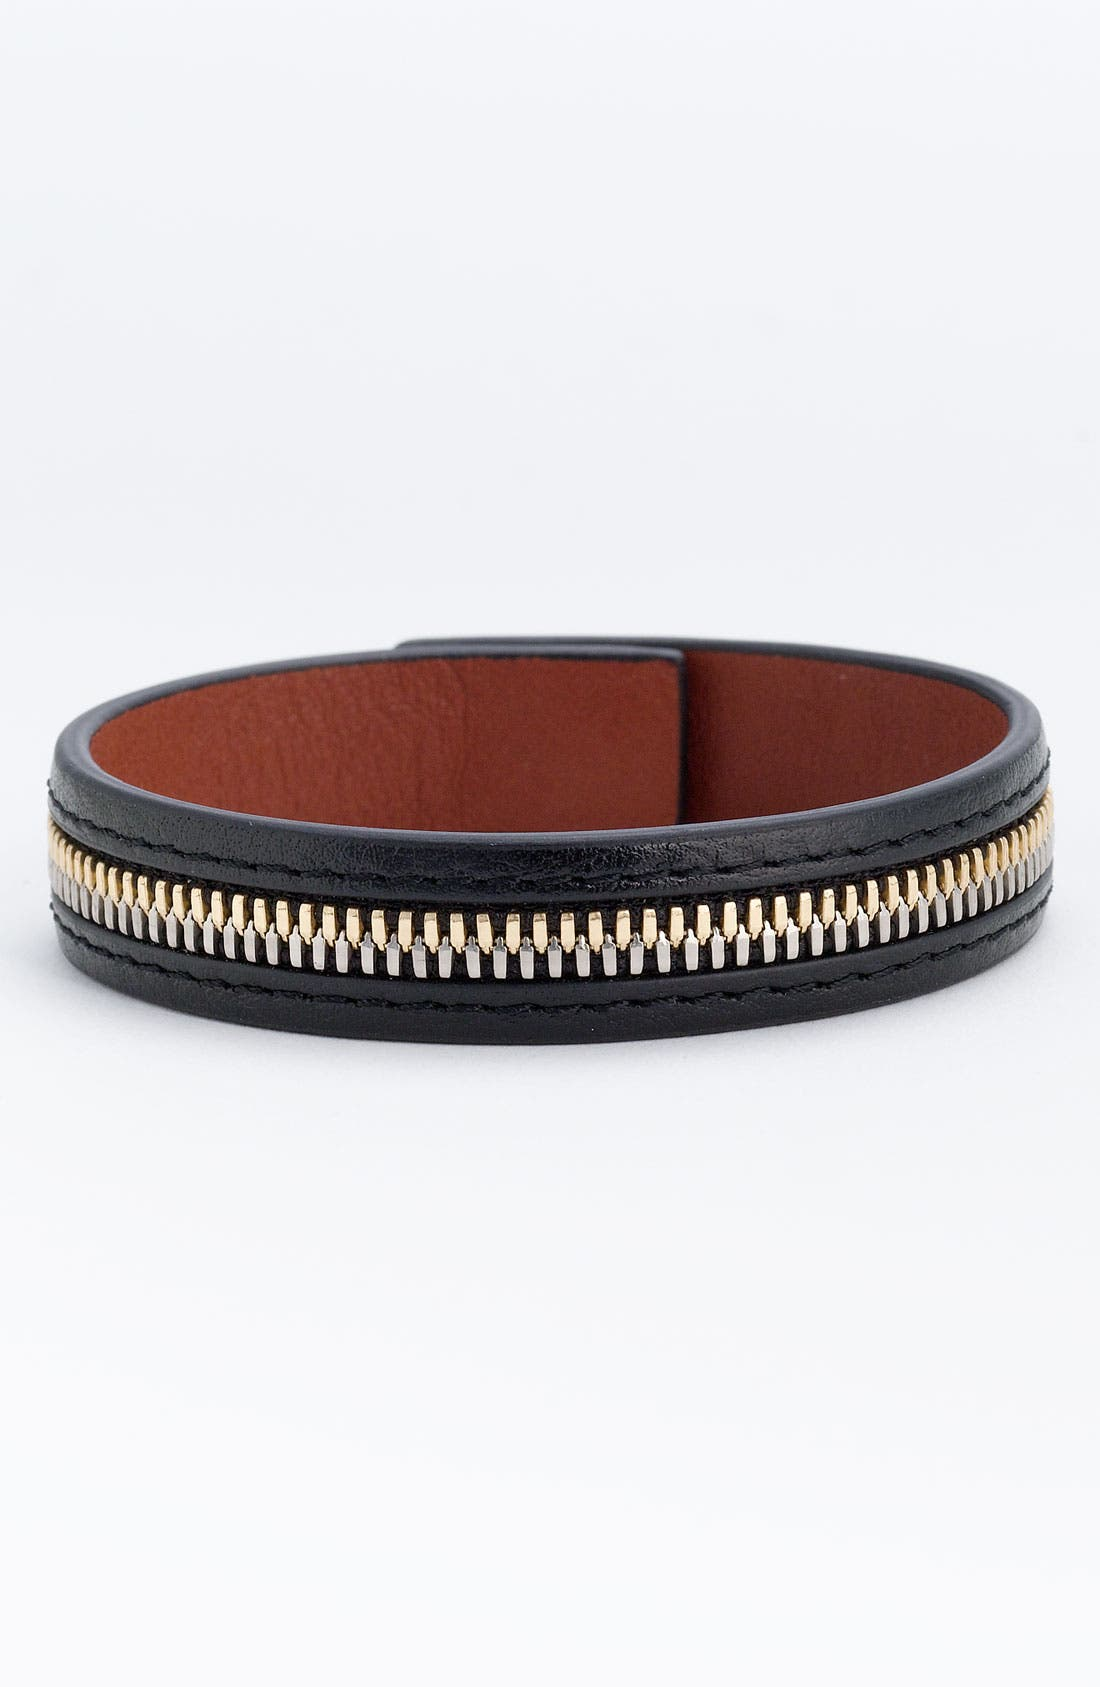 Alternate Image 1 Selected - WANT Les Essentiels de la Vie 'Tambo' Zip Leather Bracelet